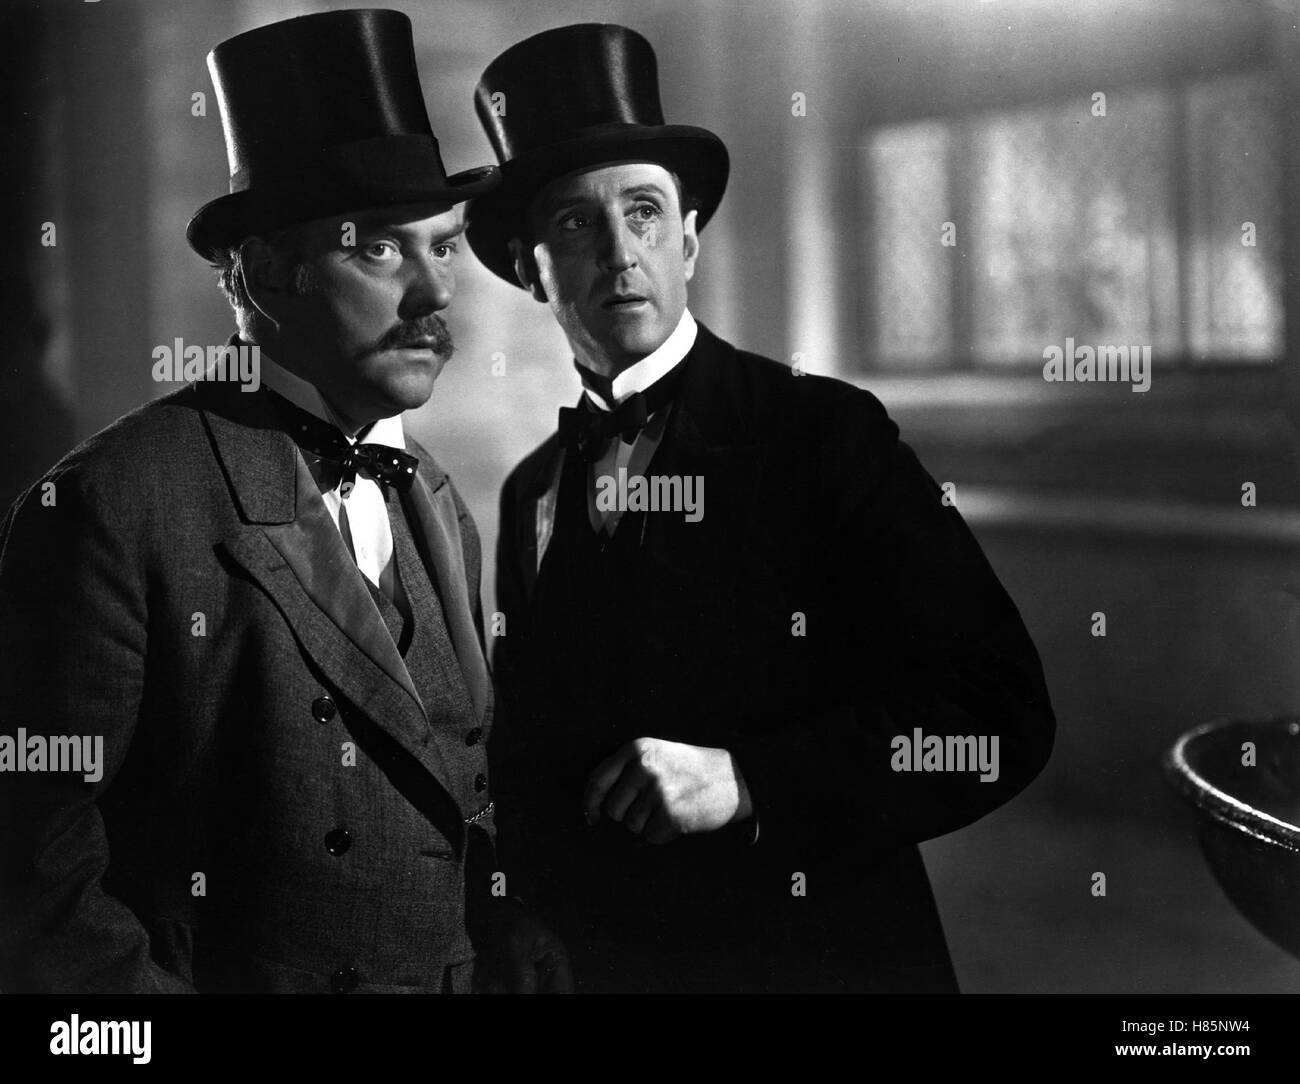 the hound of the baskervilles 1939 stock photos the hound of the baskervilles 1939 stock. Black Bedroom Furniture Sets. Home Design Ideas